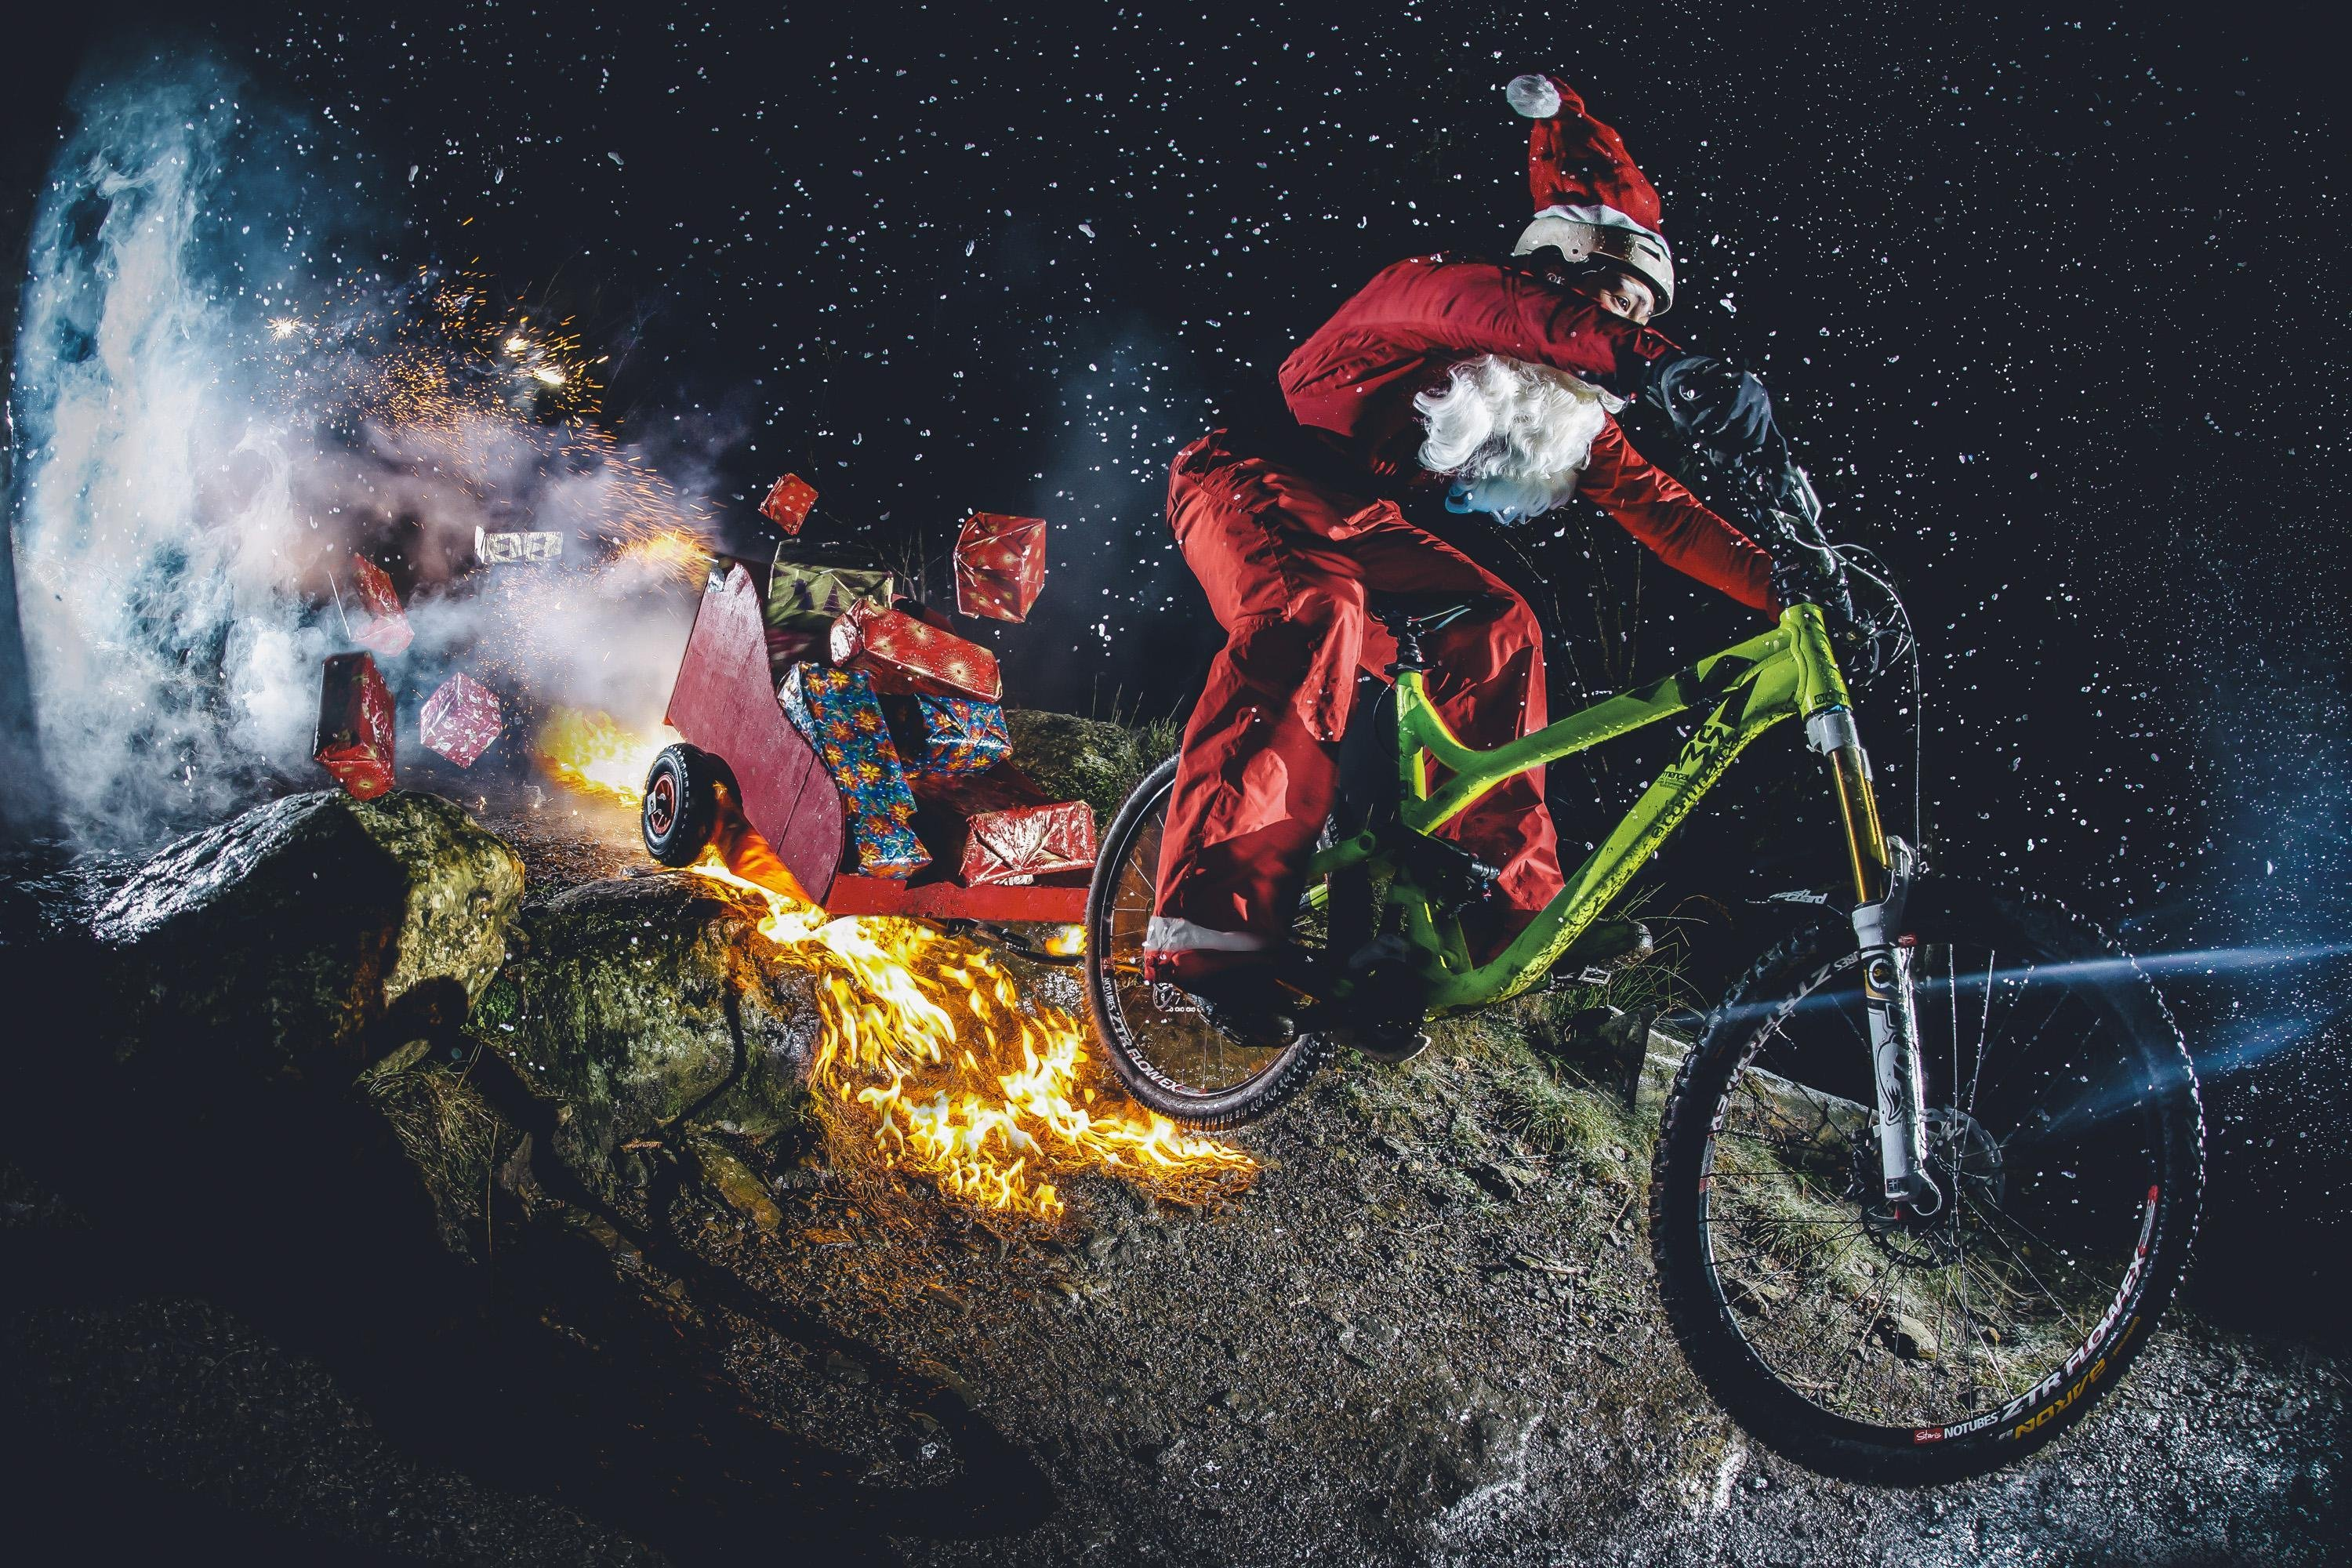 rad-santa-rides-his-mtb-and-sleigh-through-some-fireworks.jpg